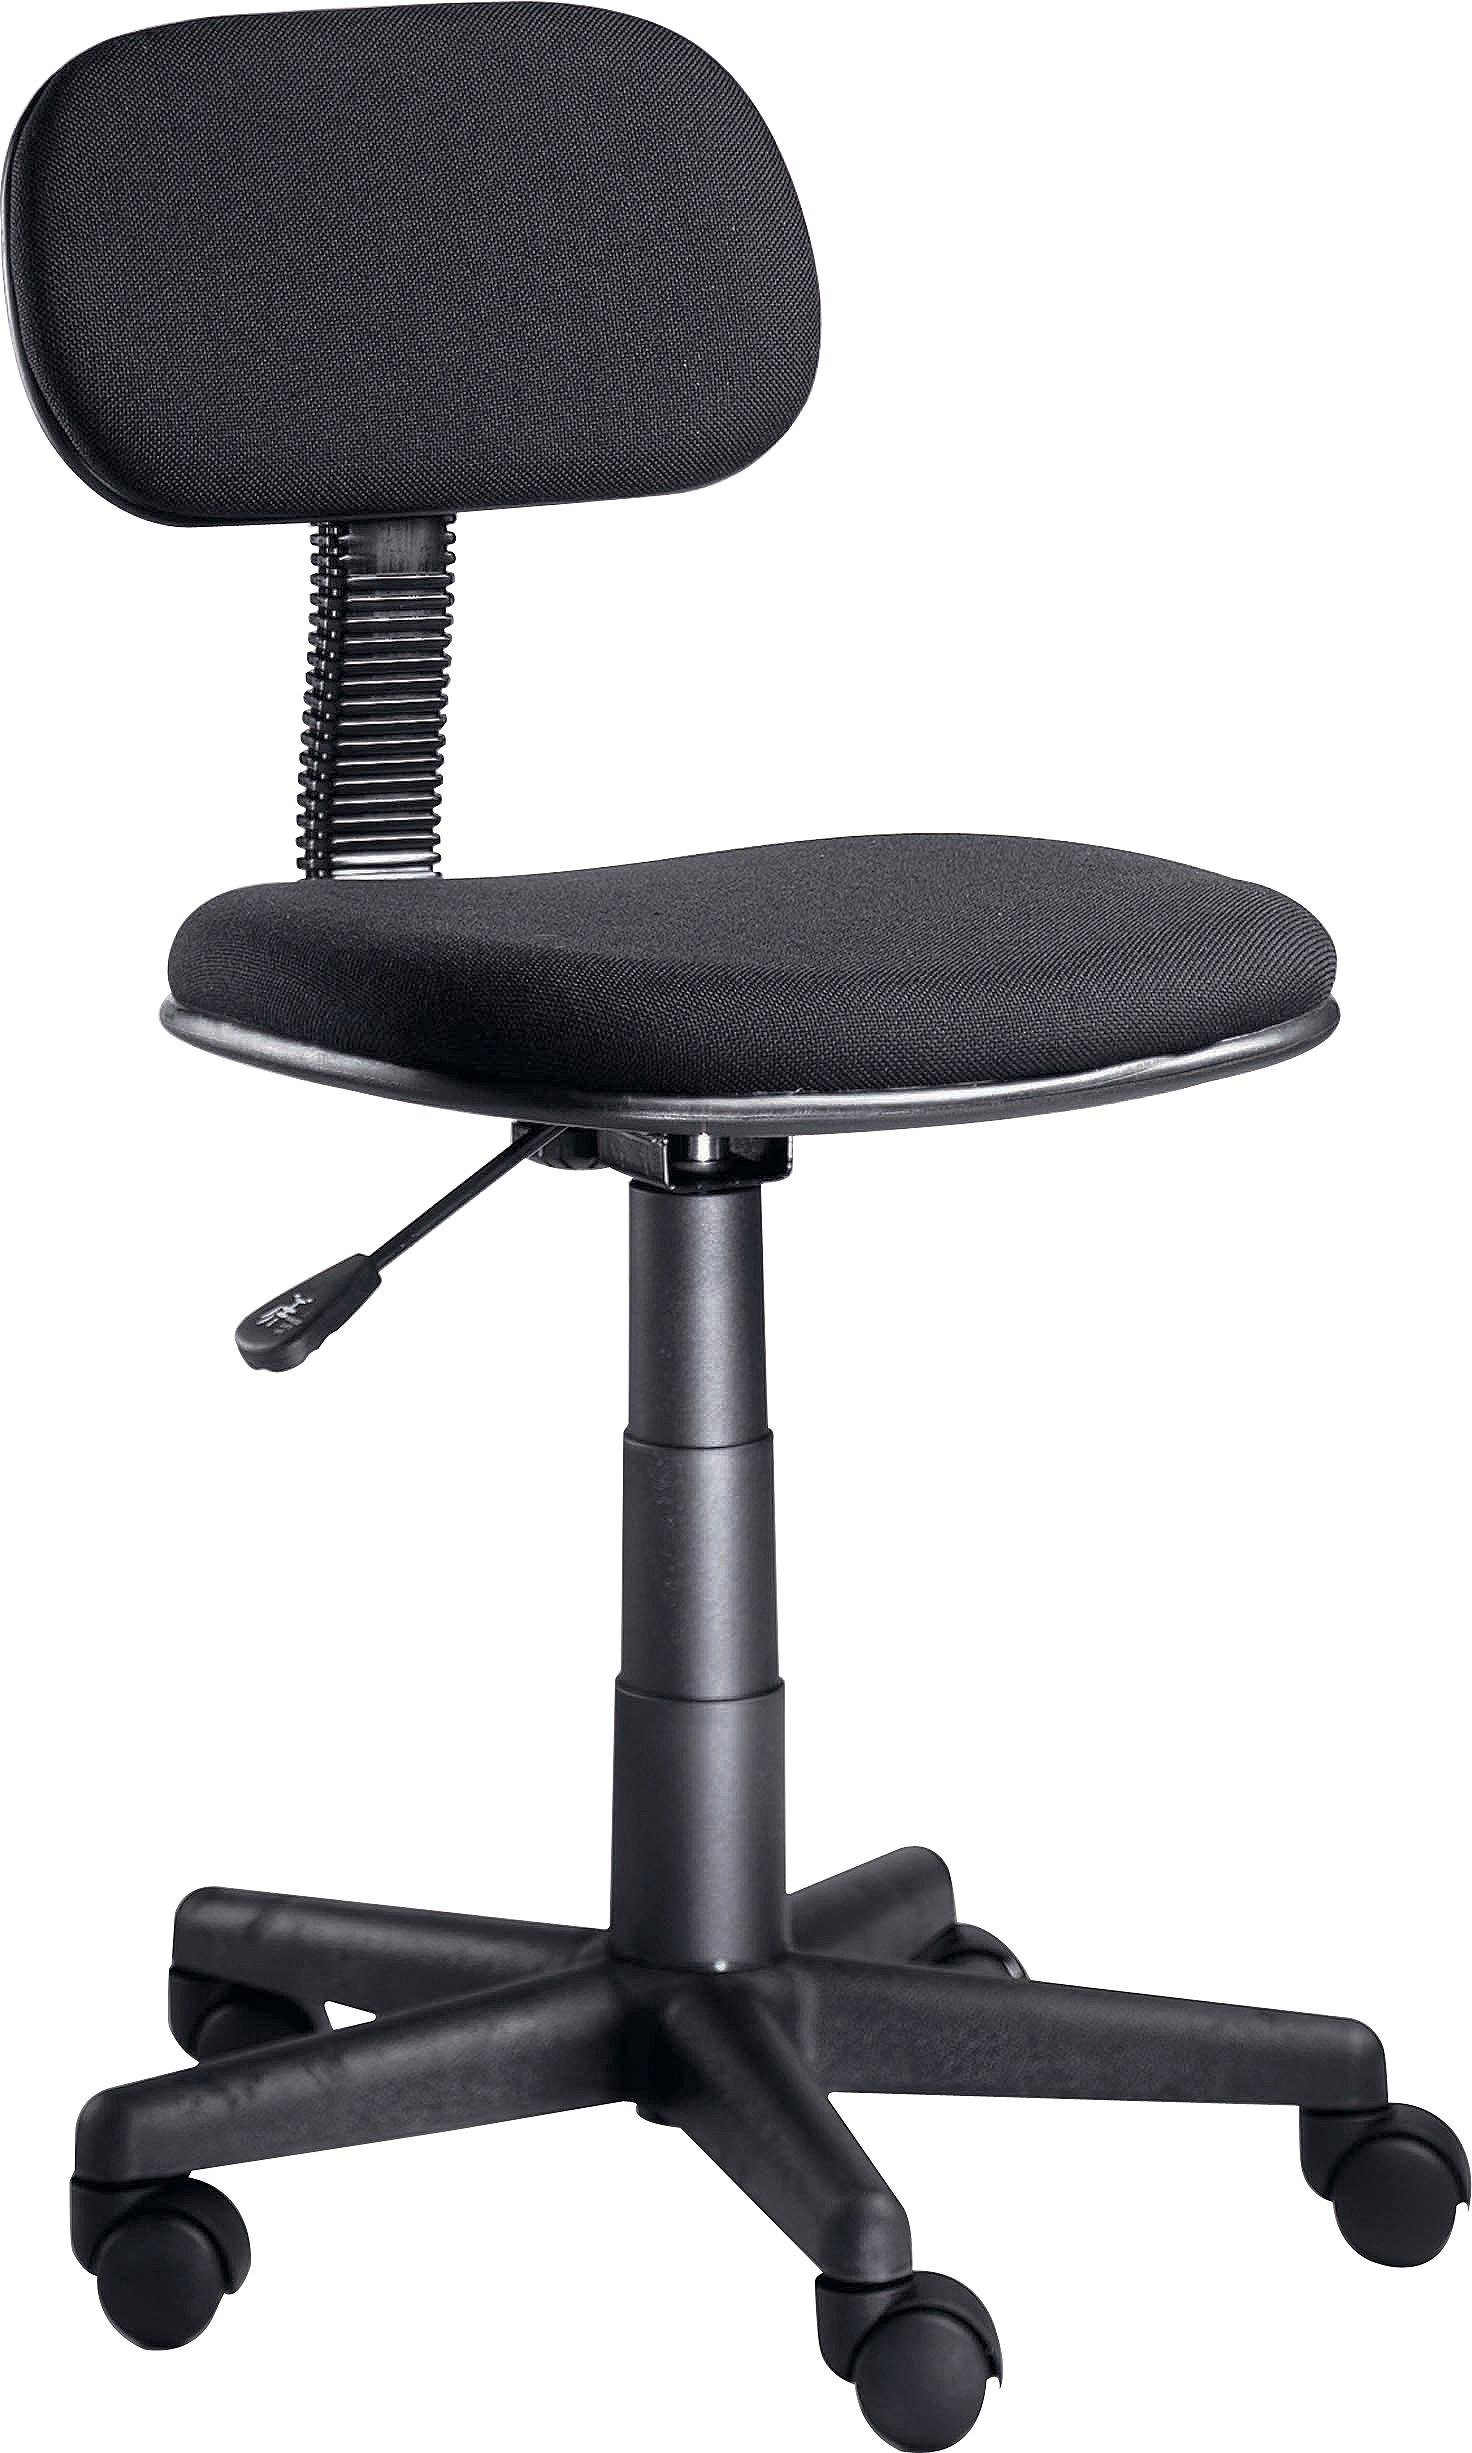 Buy Gas Lift Height Adjustable Office Chair Black At